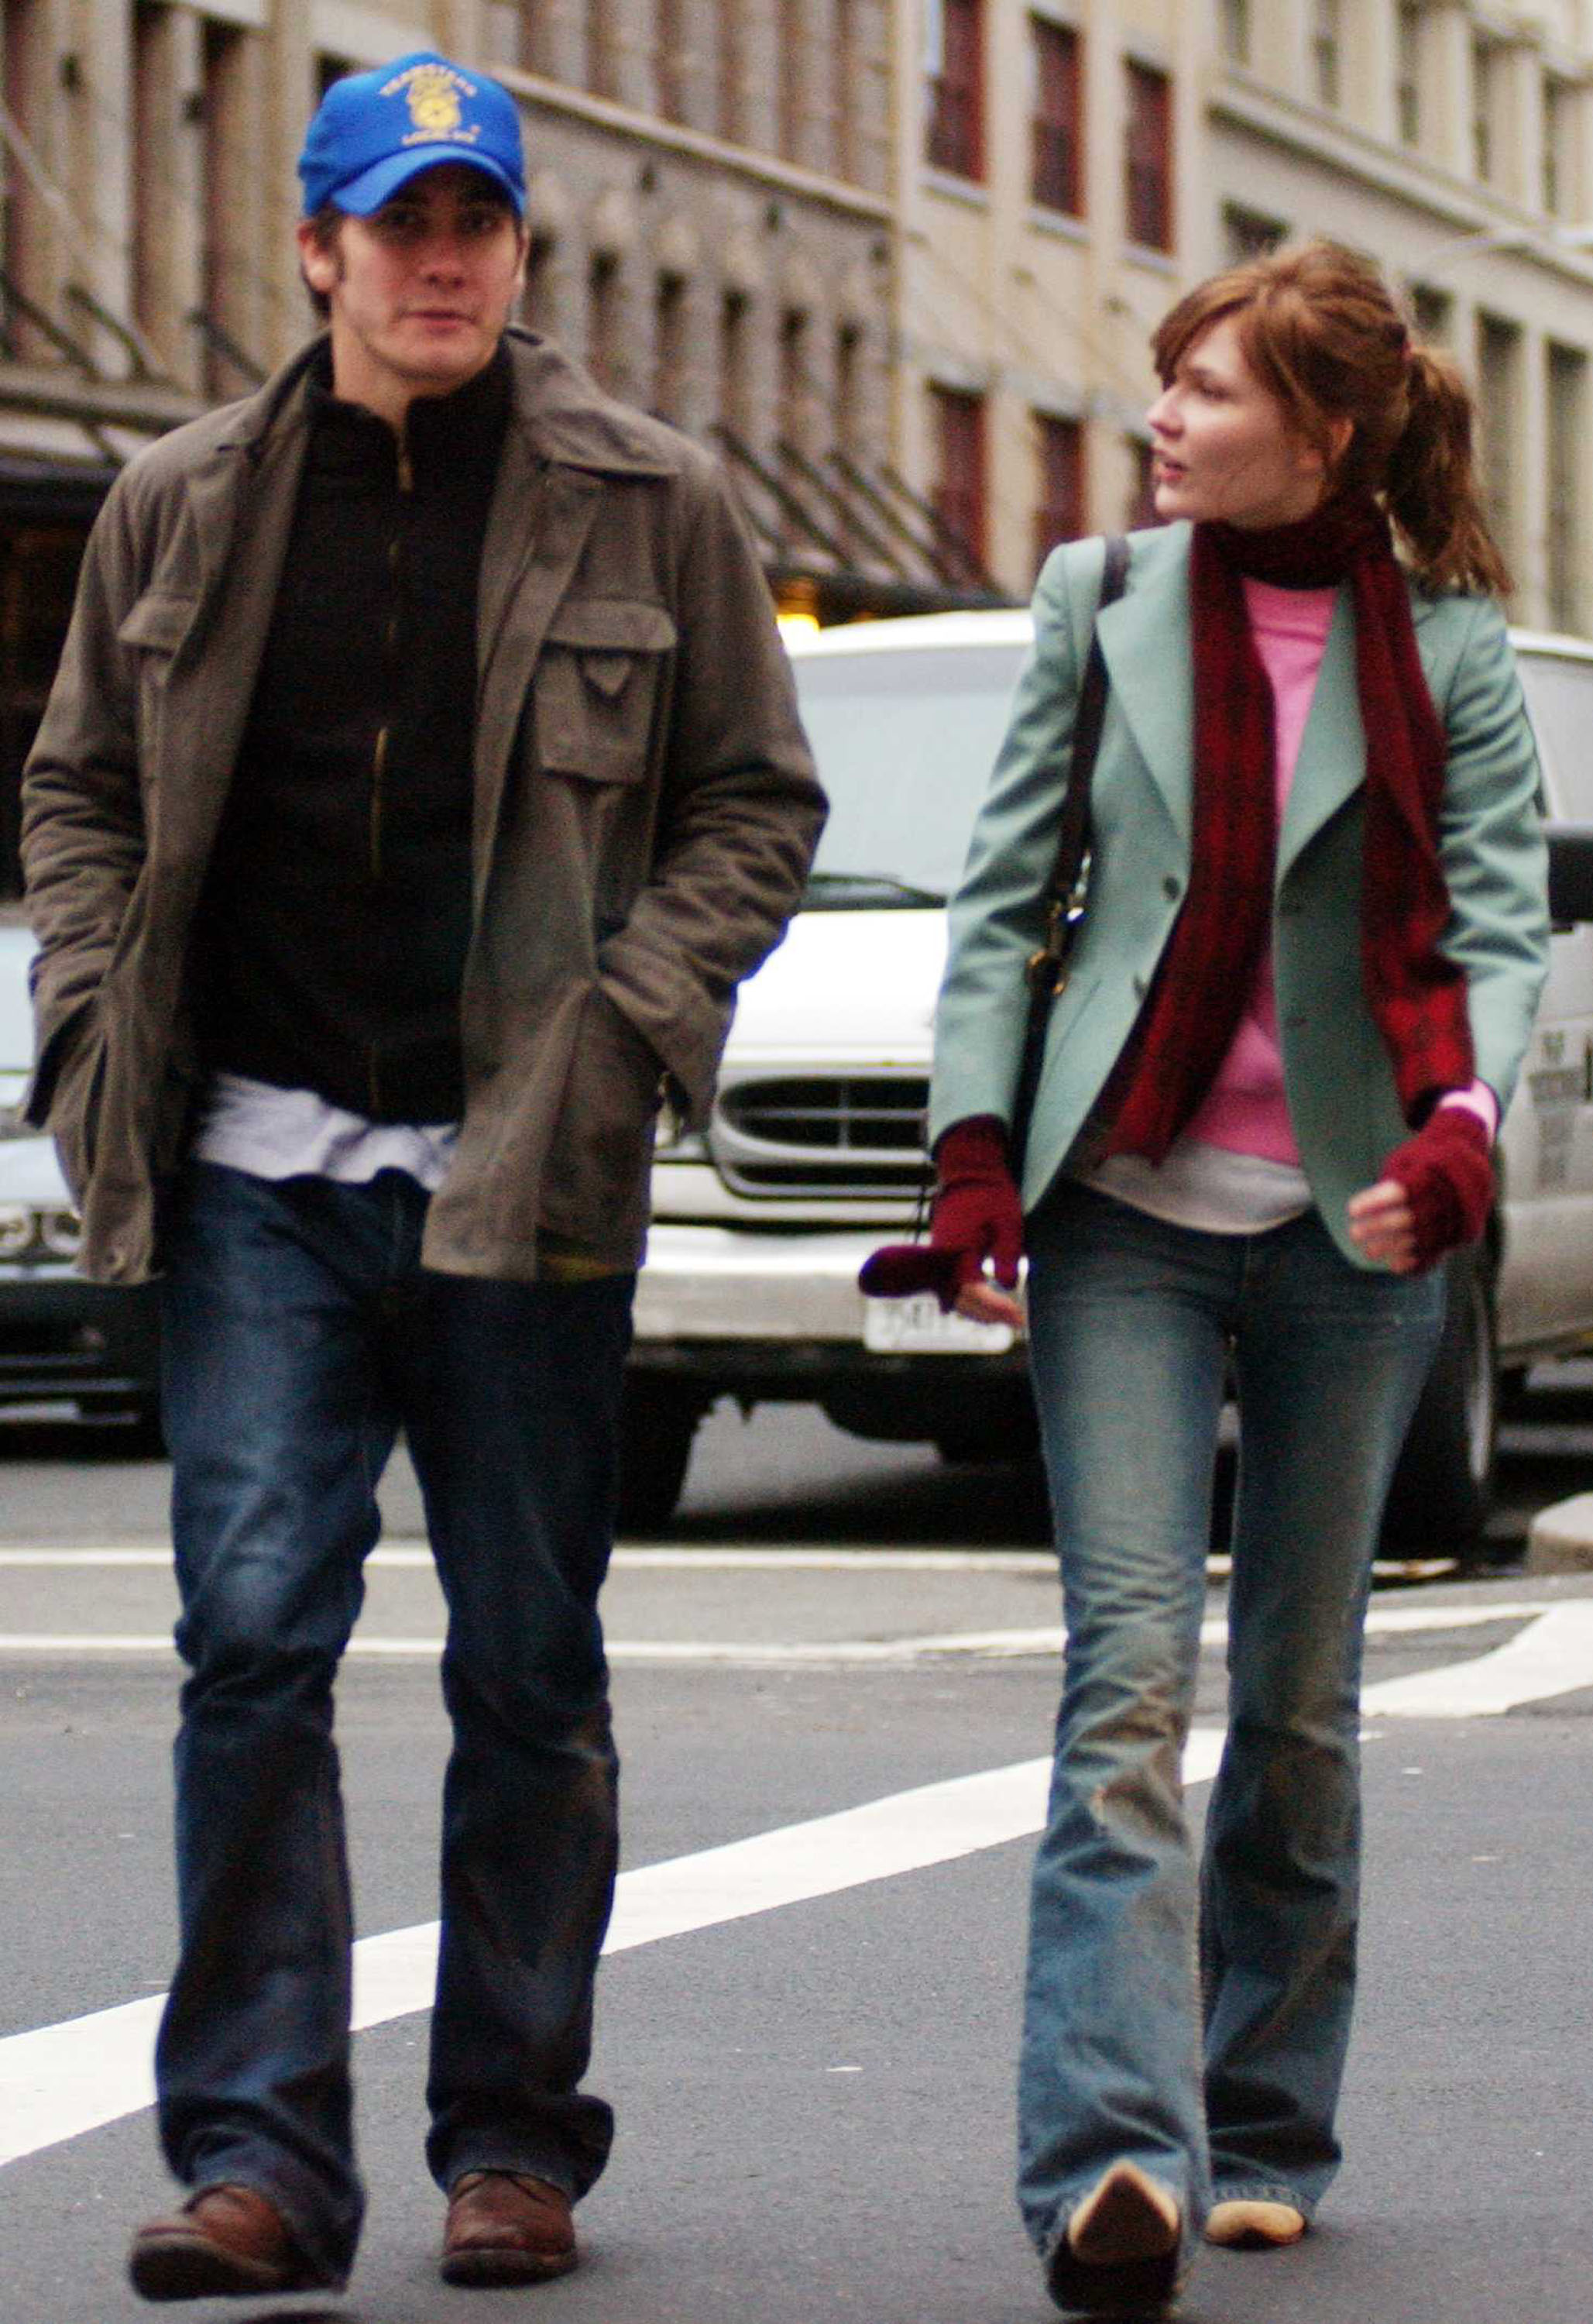 kirsten dunst and jake gyllenhall walking in new york in the 00s